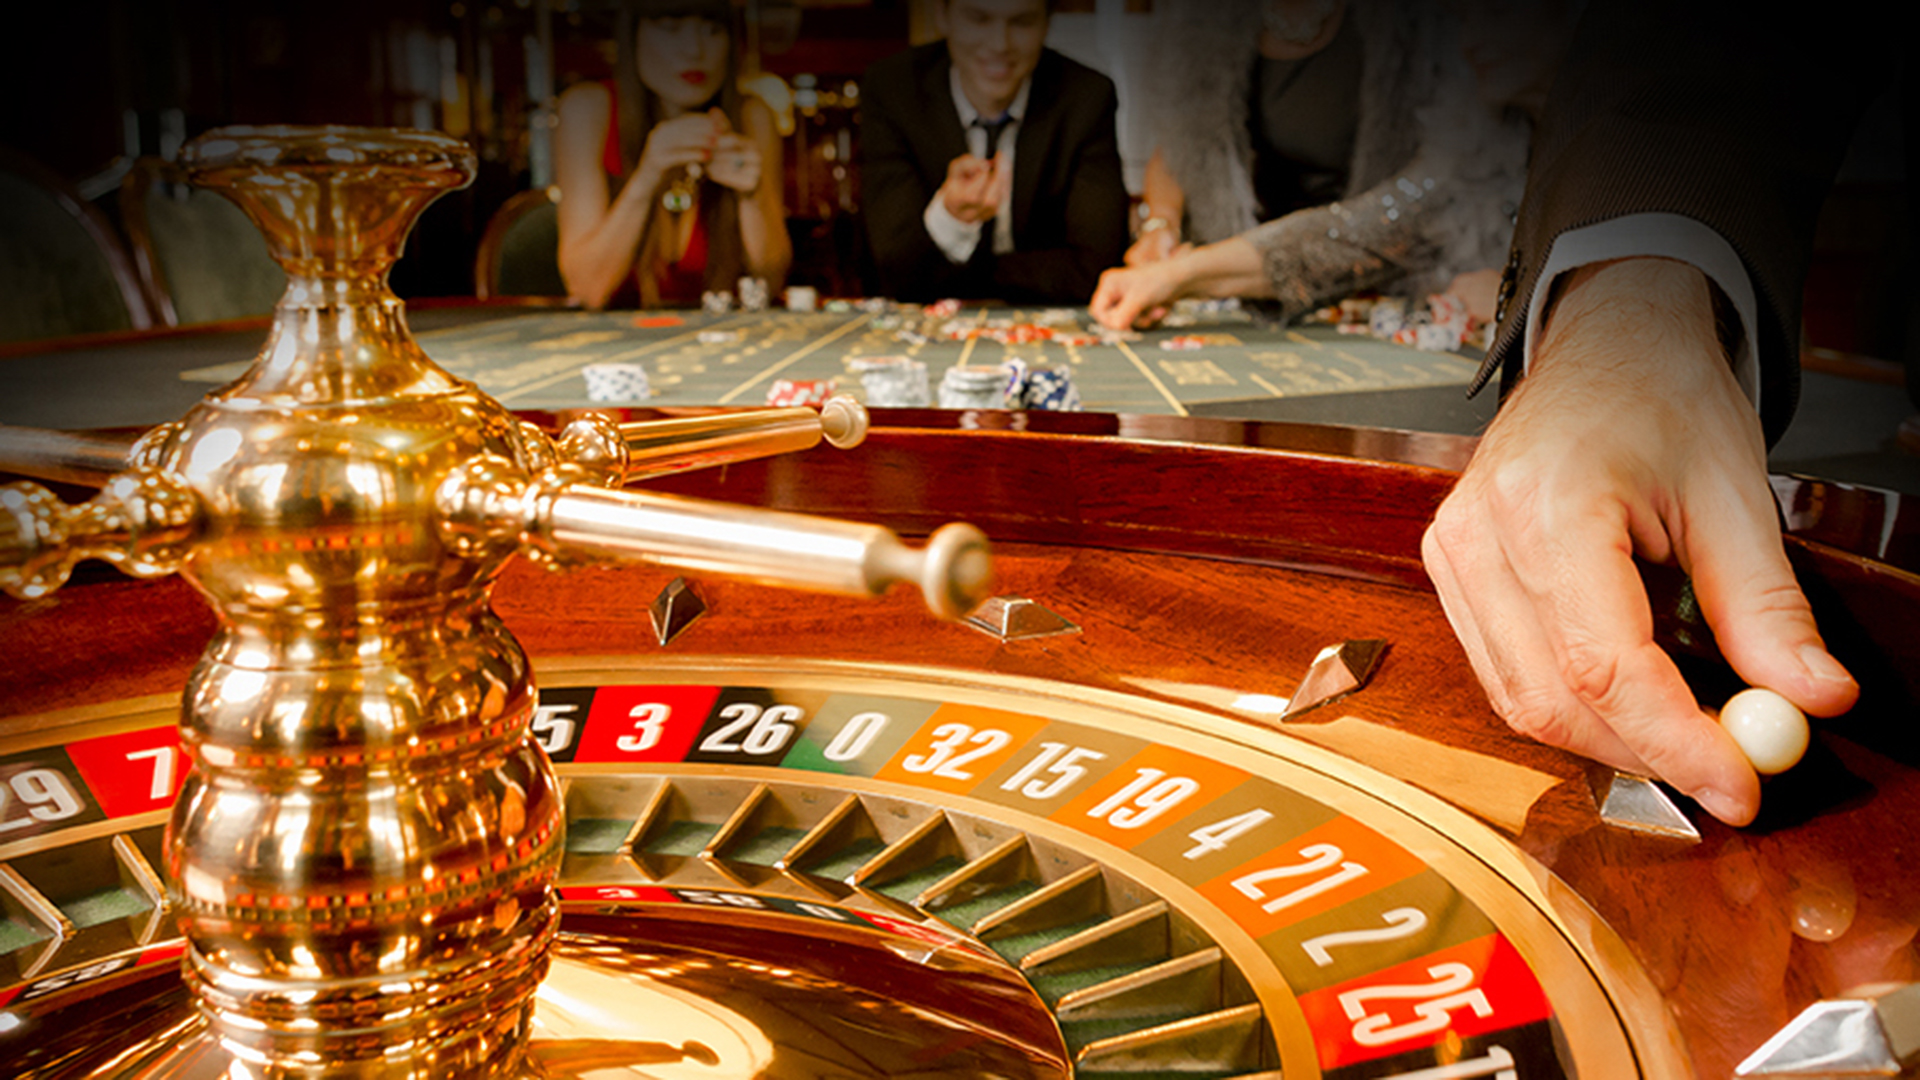 Download Free App And Play Live The Roulette Free